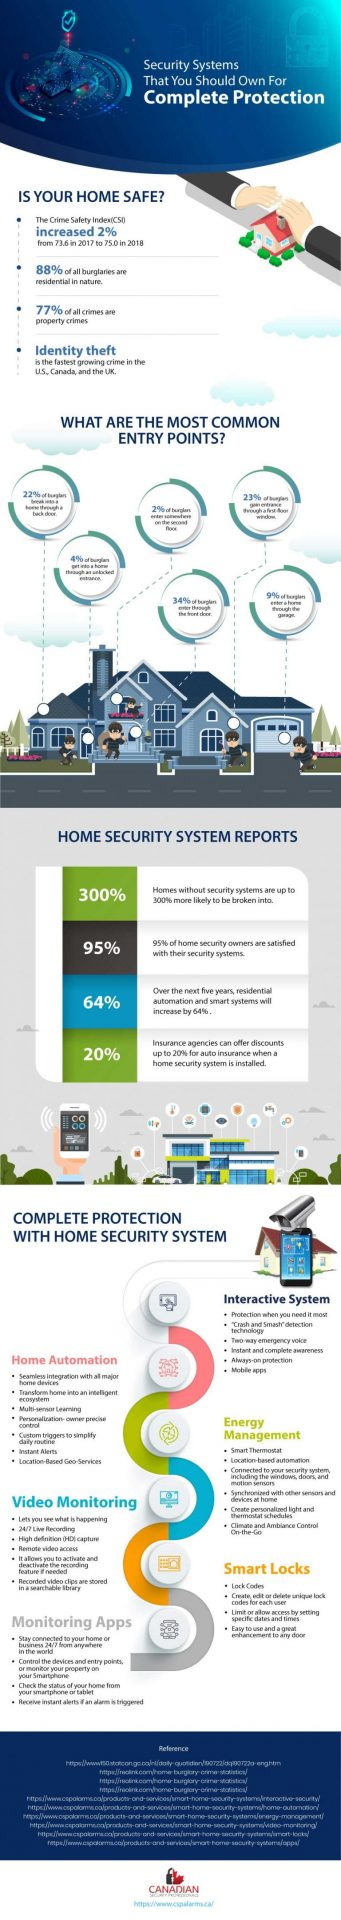 Security Tips To Protect Your Home From Burglary